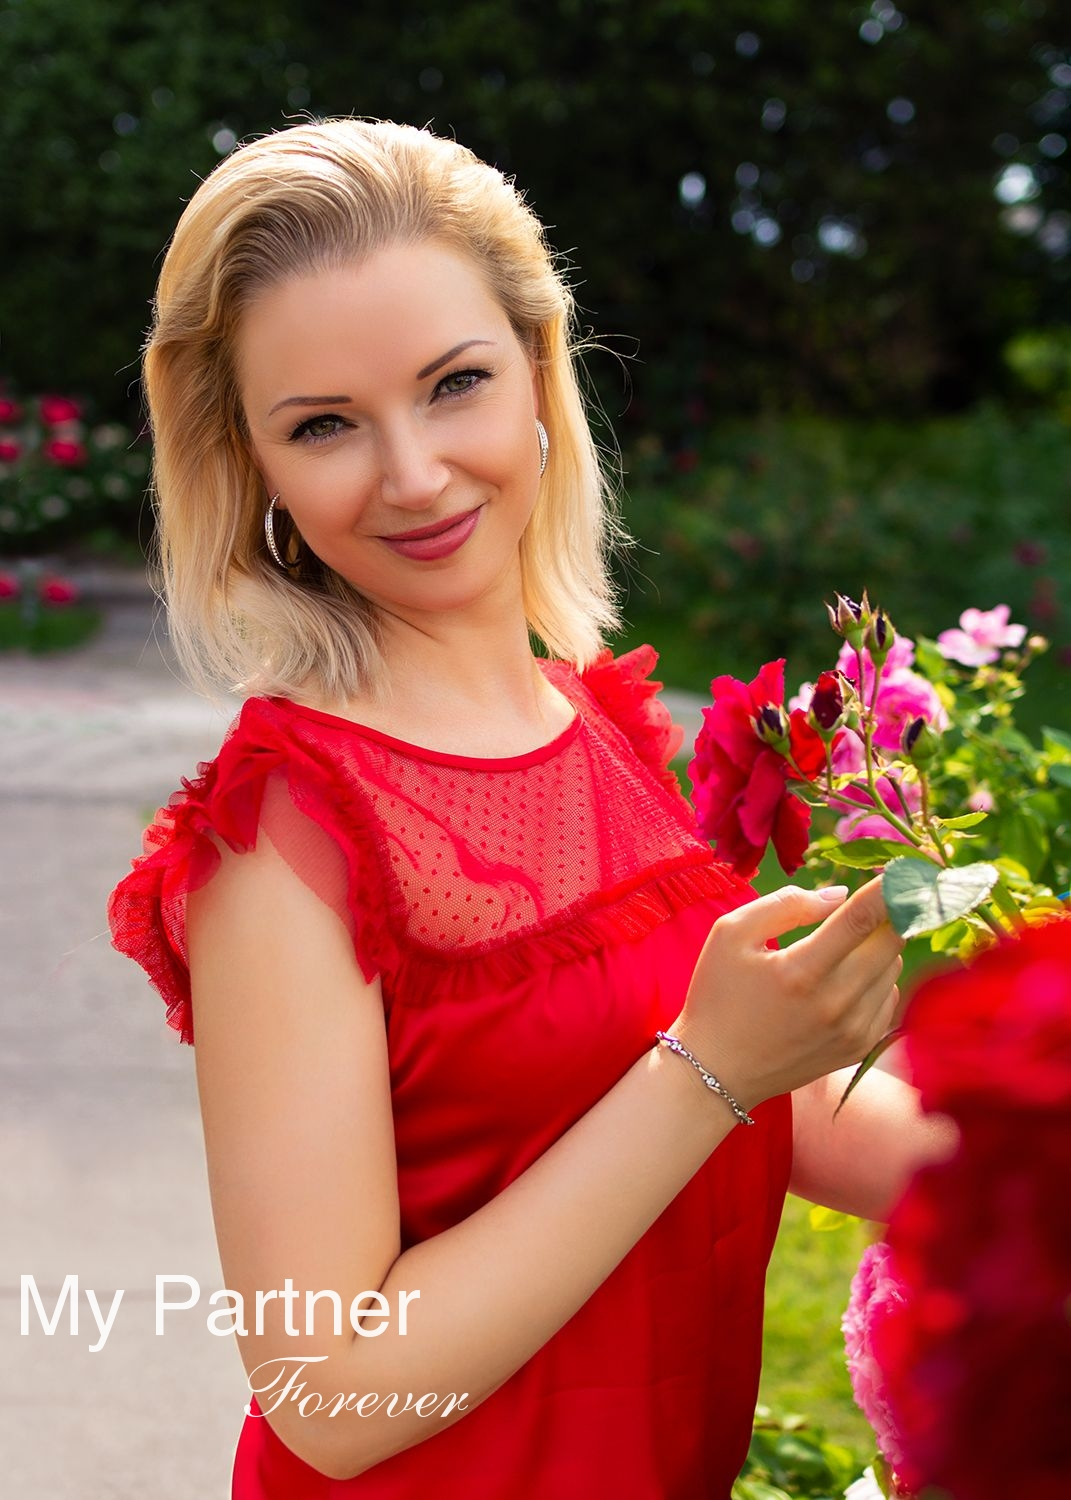 Dating Service to Meet Gorgeous Ukrainian Woman Nadezhda from Kiev, Ukraine